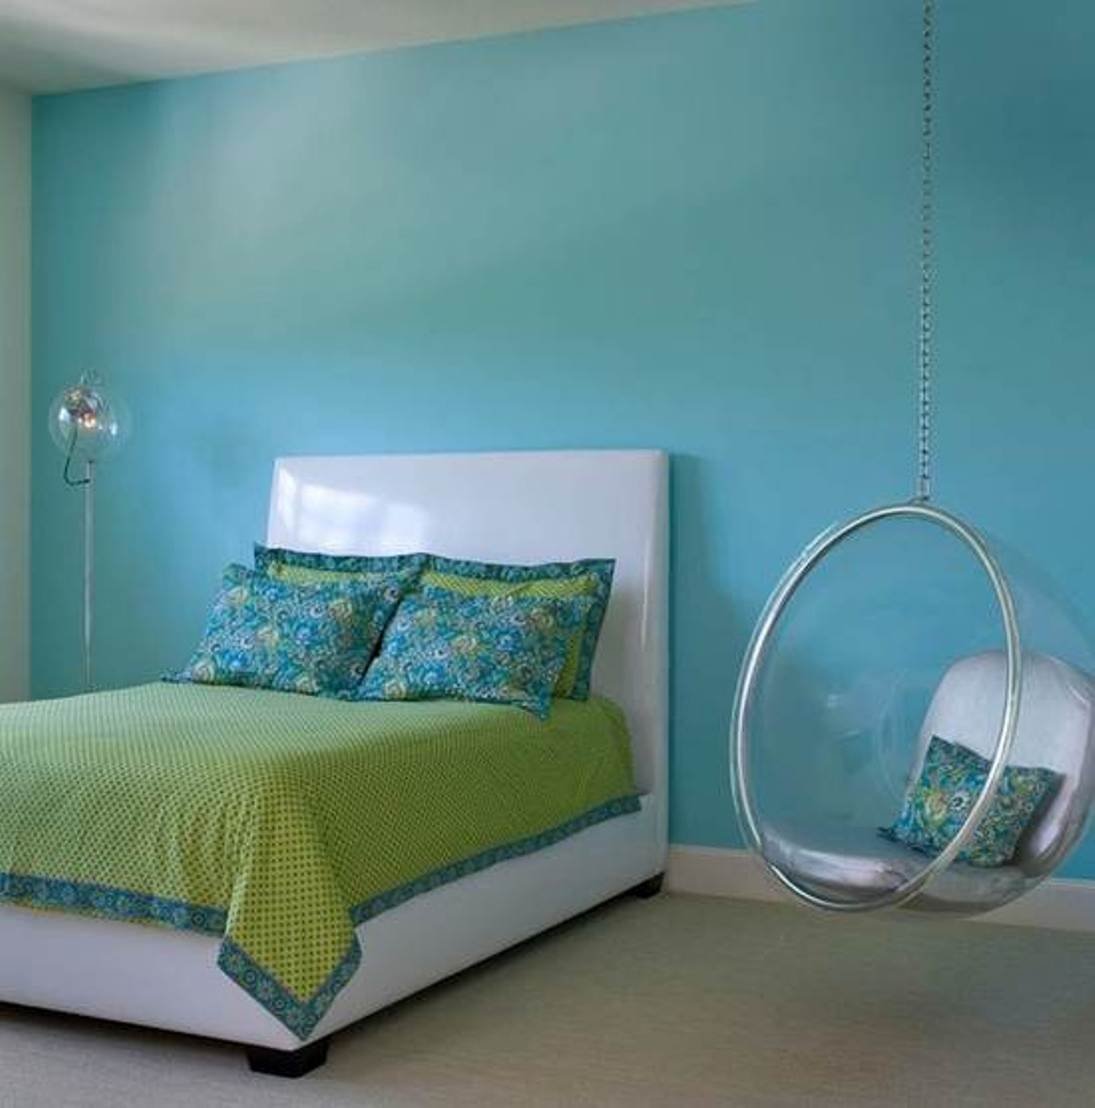 Contemporary-Hanging-Chair-for-Bedroom-with-Light-Blue-Color-Wall-Paint-and-Minimalist-Bed